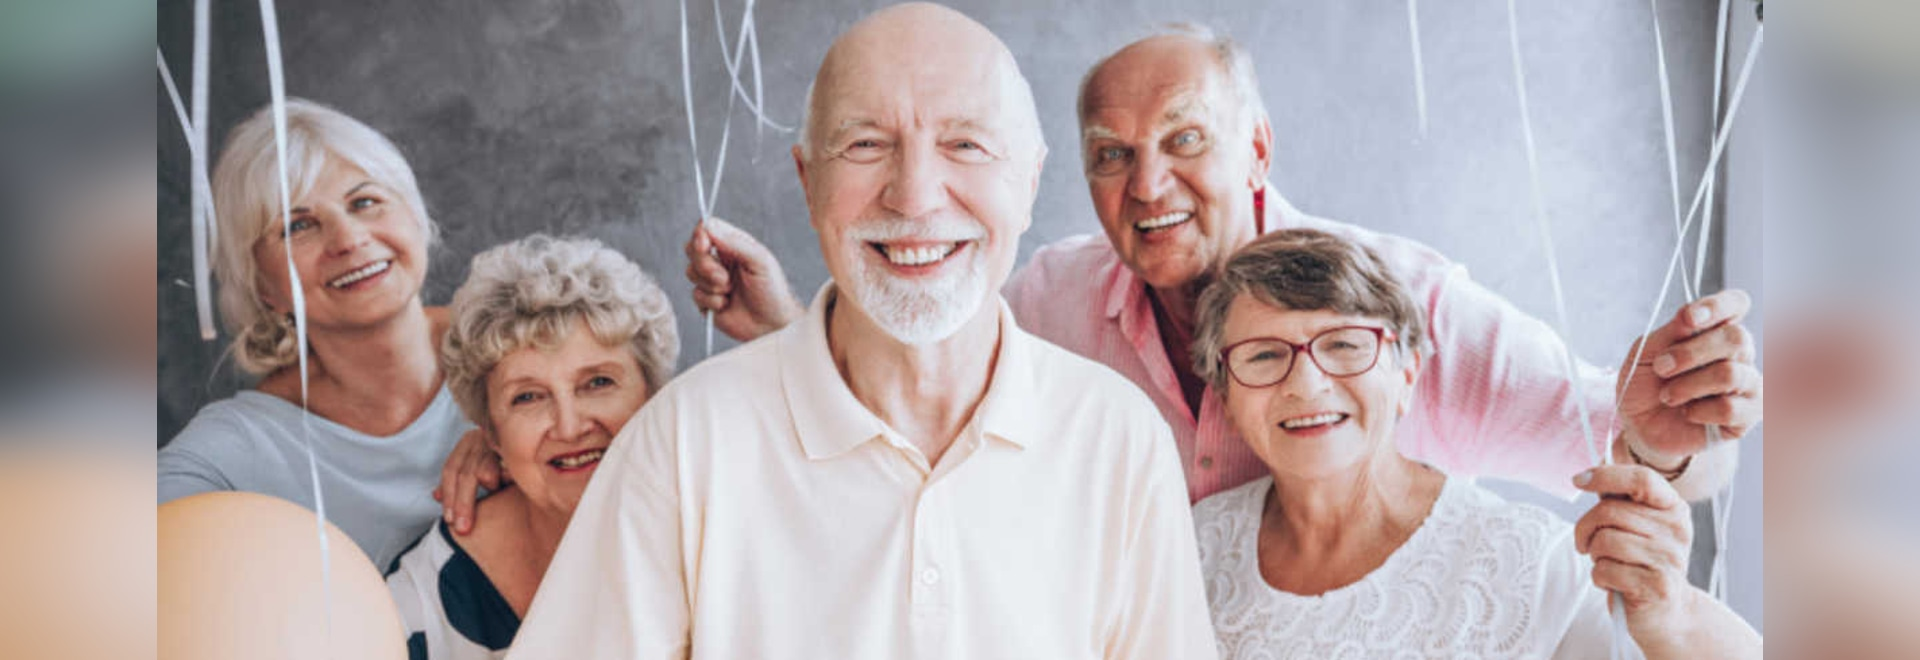 Researchers have developed a 2-minute-long simple oral exercise that improved mastication, salivation and swallowing function in the elderly people in their study. (Photograph: Photographee.eu/Shut...